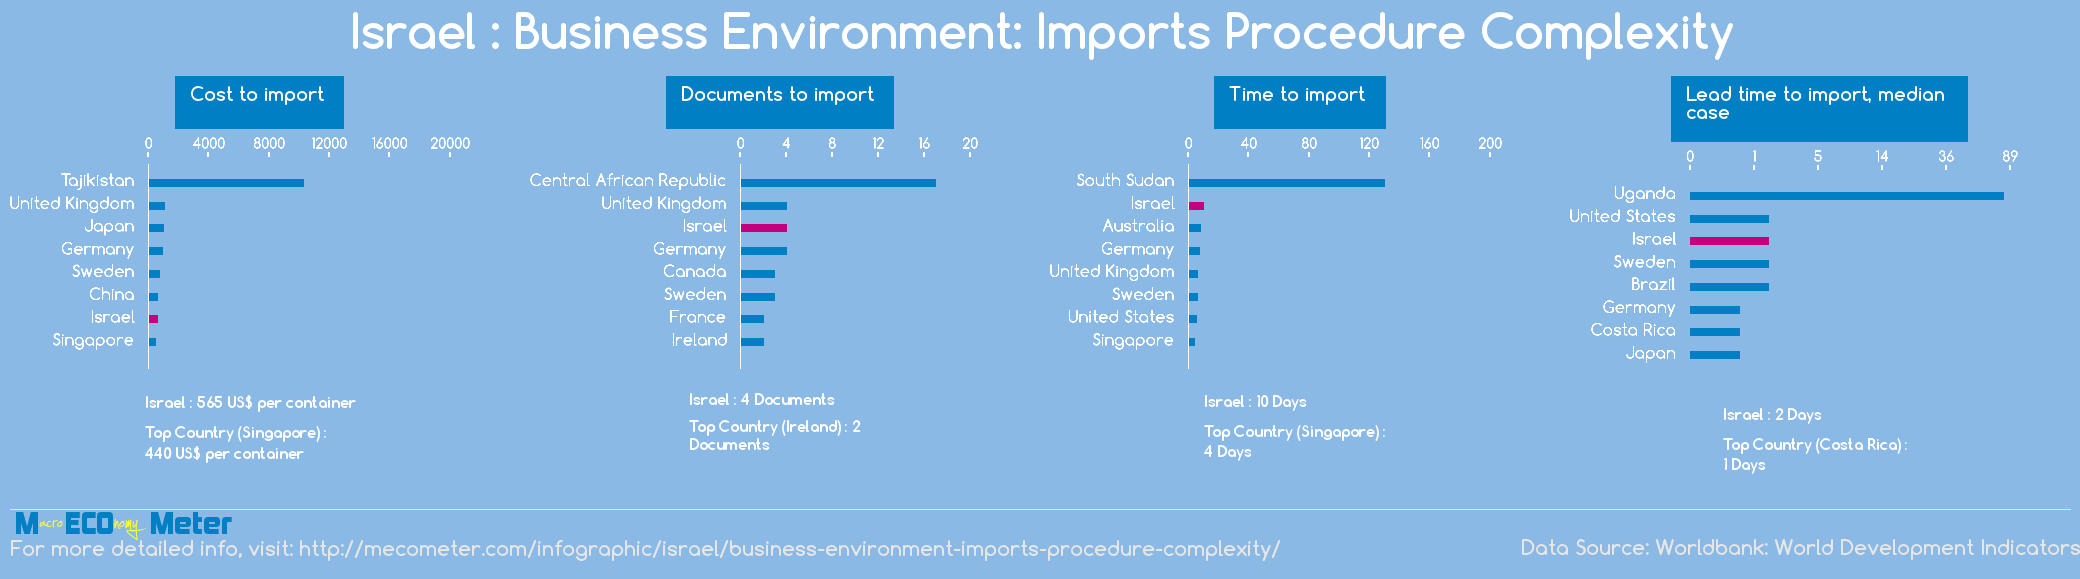 Israel : Business Environment: Imports Procedure Complexity